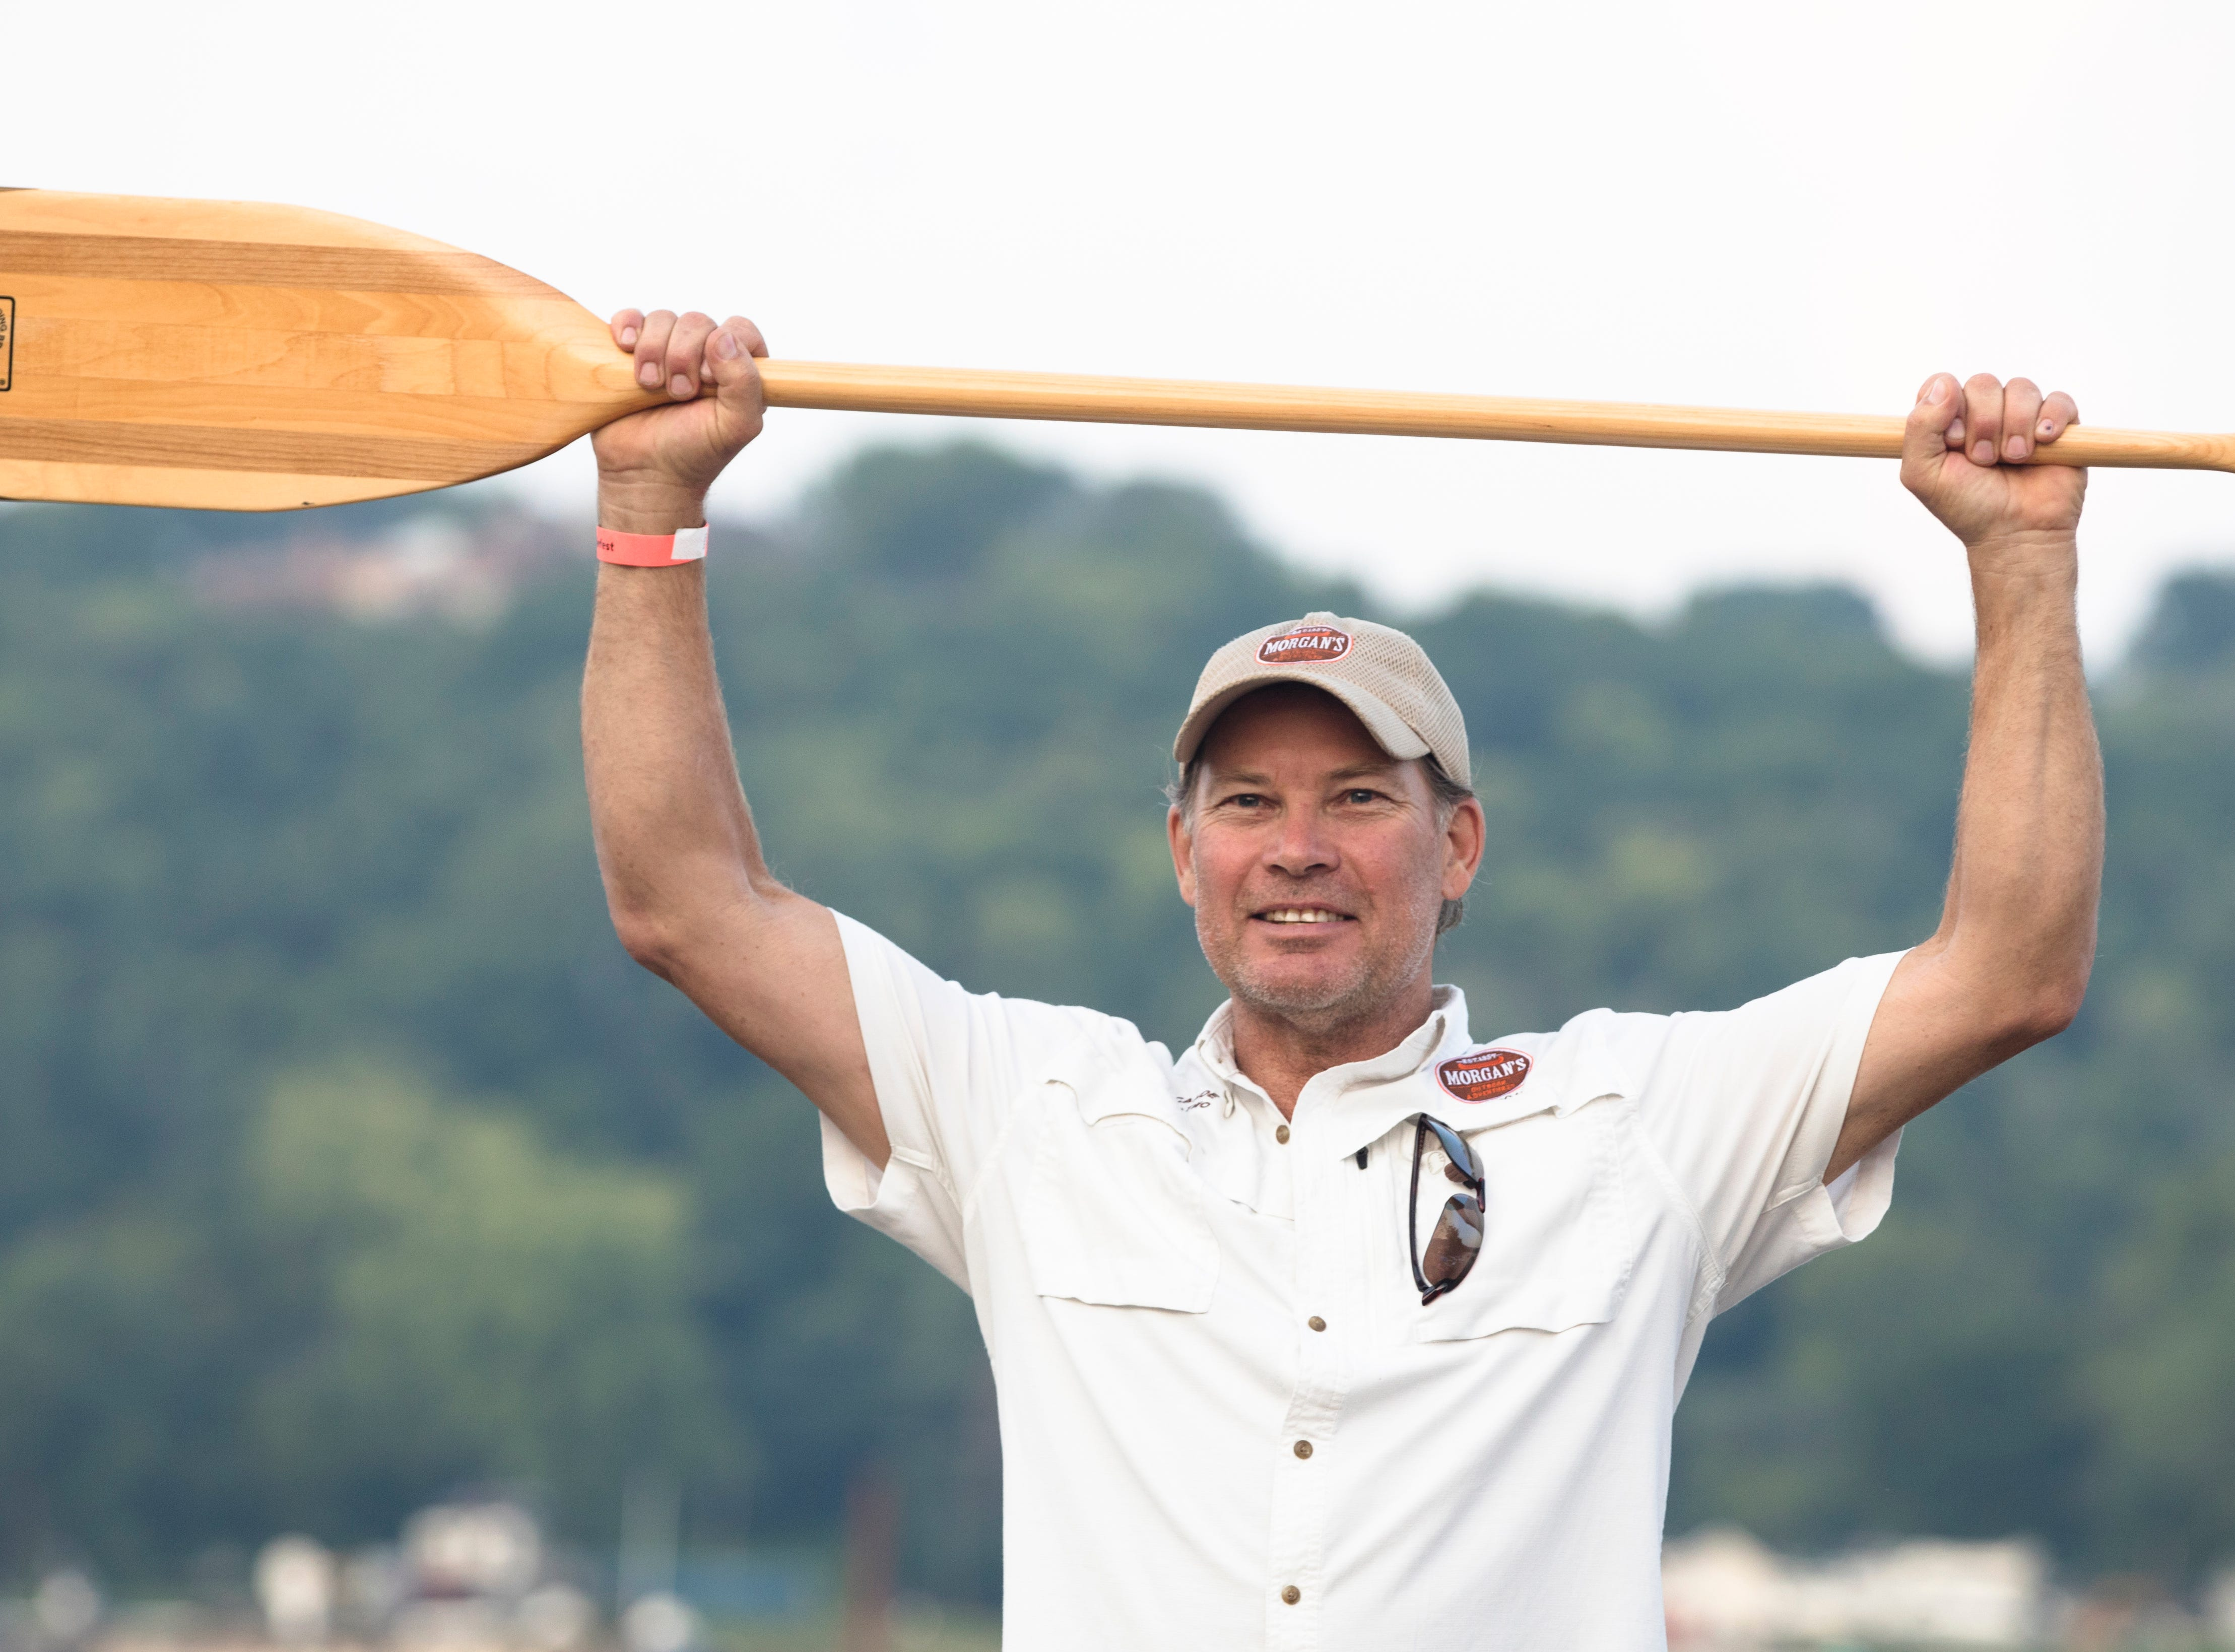 Dirk Morgan, son of Bob Morgan, holds up the ceremonial oar dedicated to his late father during the 17th annual Ohio River Paddlefest in Cincinnati on Saturday, Aug. 4, 2018.  According to organizers about 2000 people participated in the event which Outdoor Adventure Clubs of Greater Cincinnati raised almost $100,000.